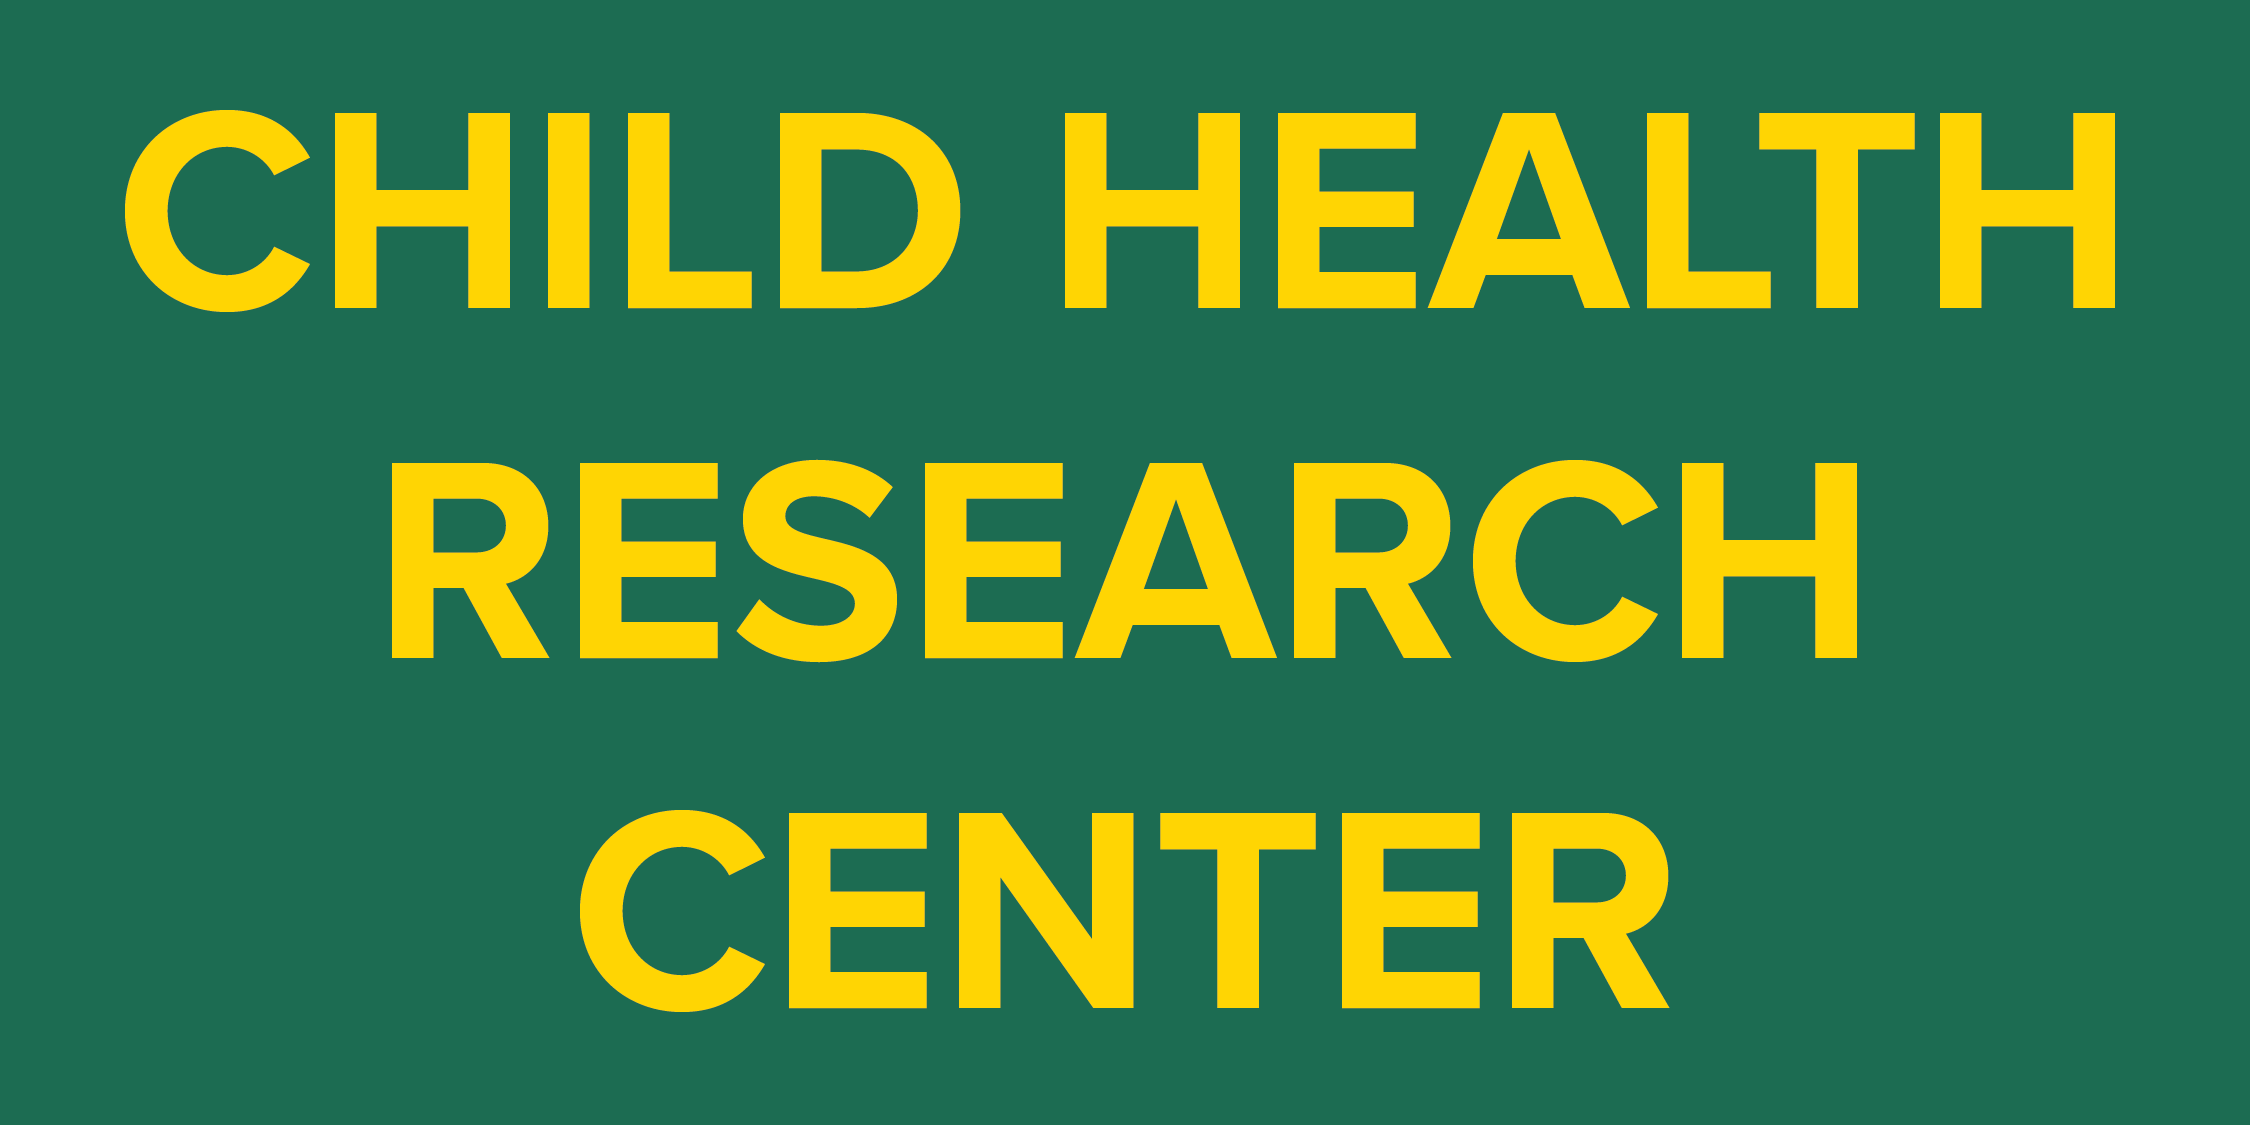 1991- Child Health Research Center (CHRC) is Established